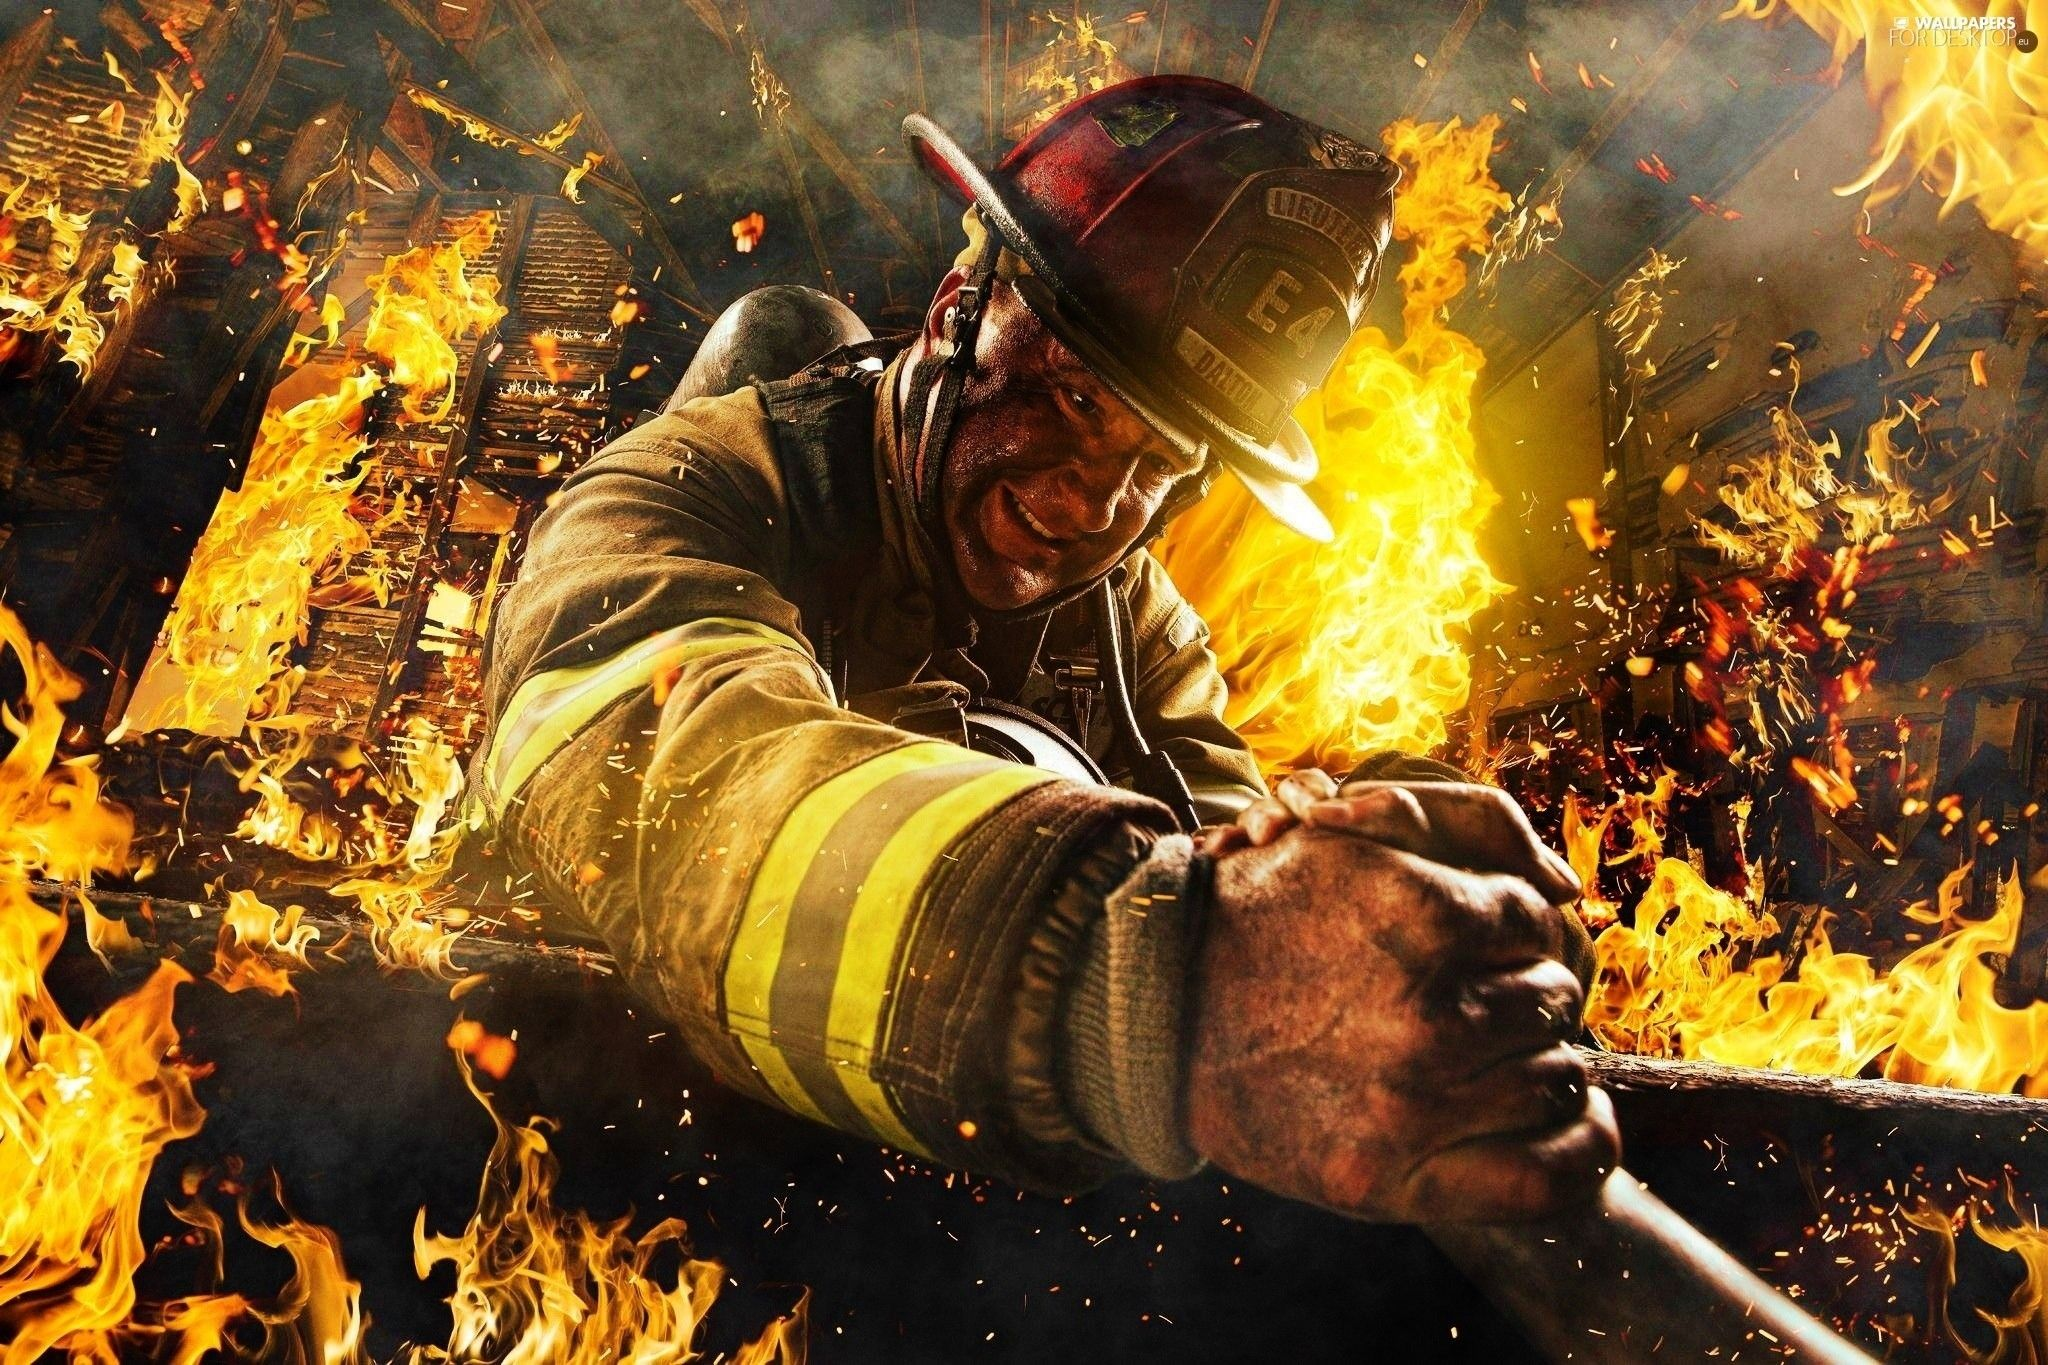 Firefighter Wallpapers   Top Firefighter Backgrounds 2048x1365